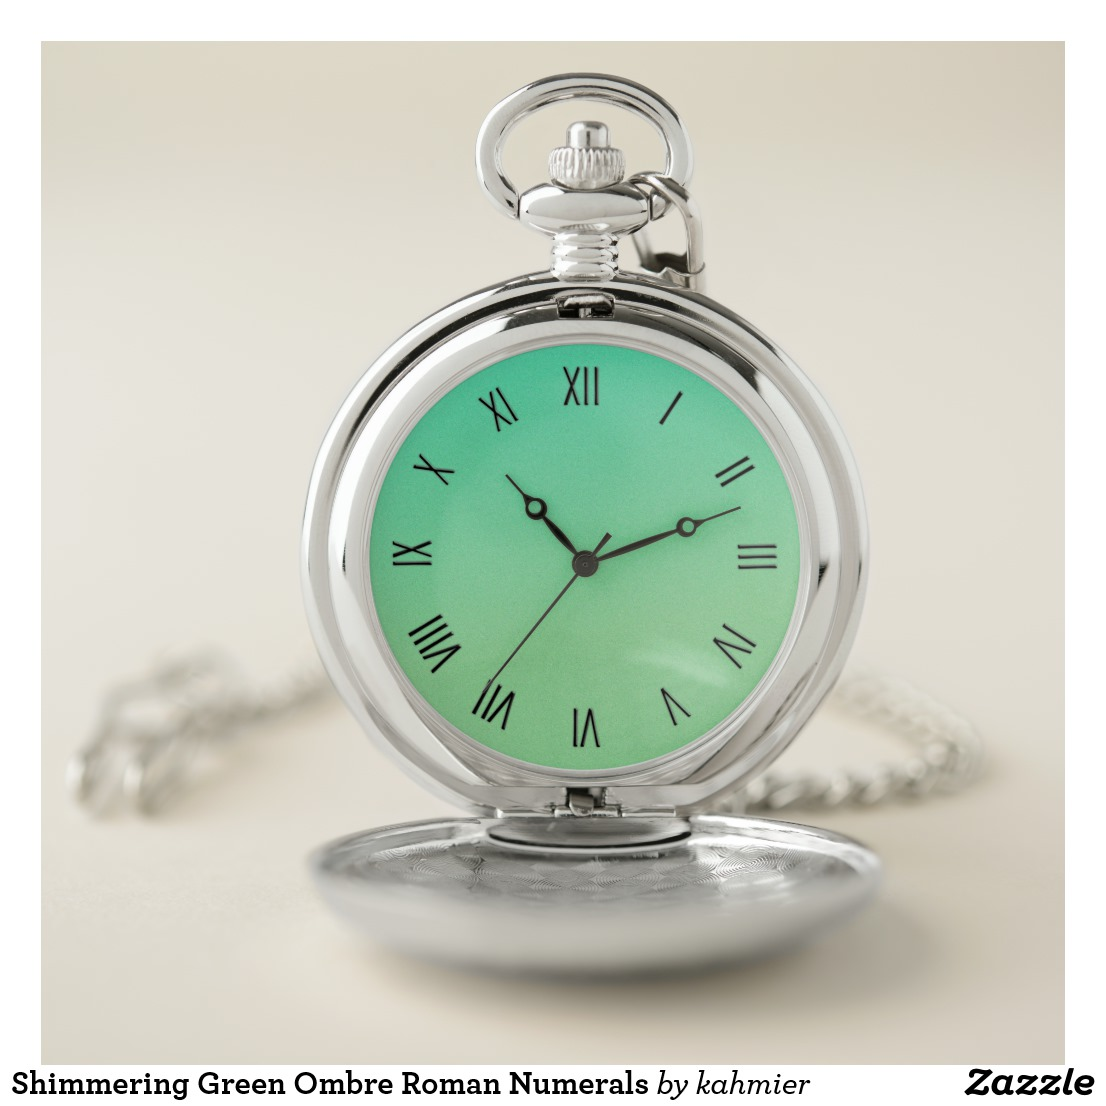 Shimmering Green Ombre Roman Numerals Pocket Watch